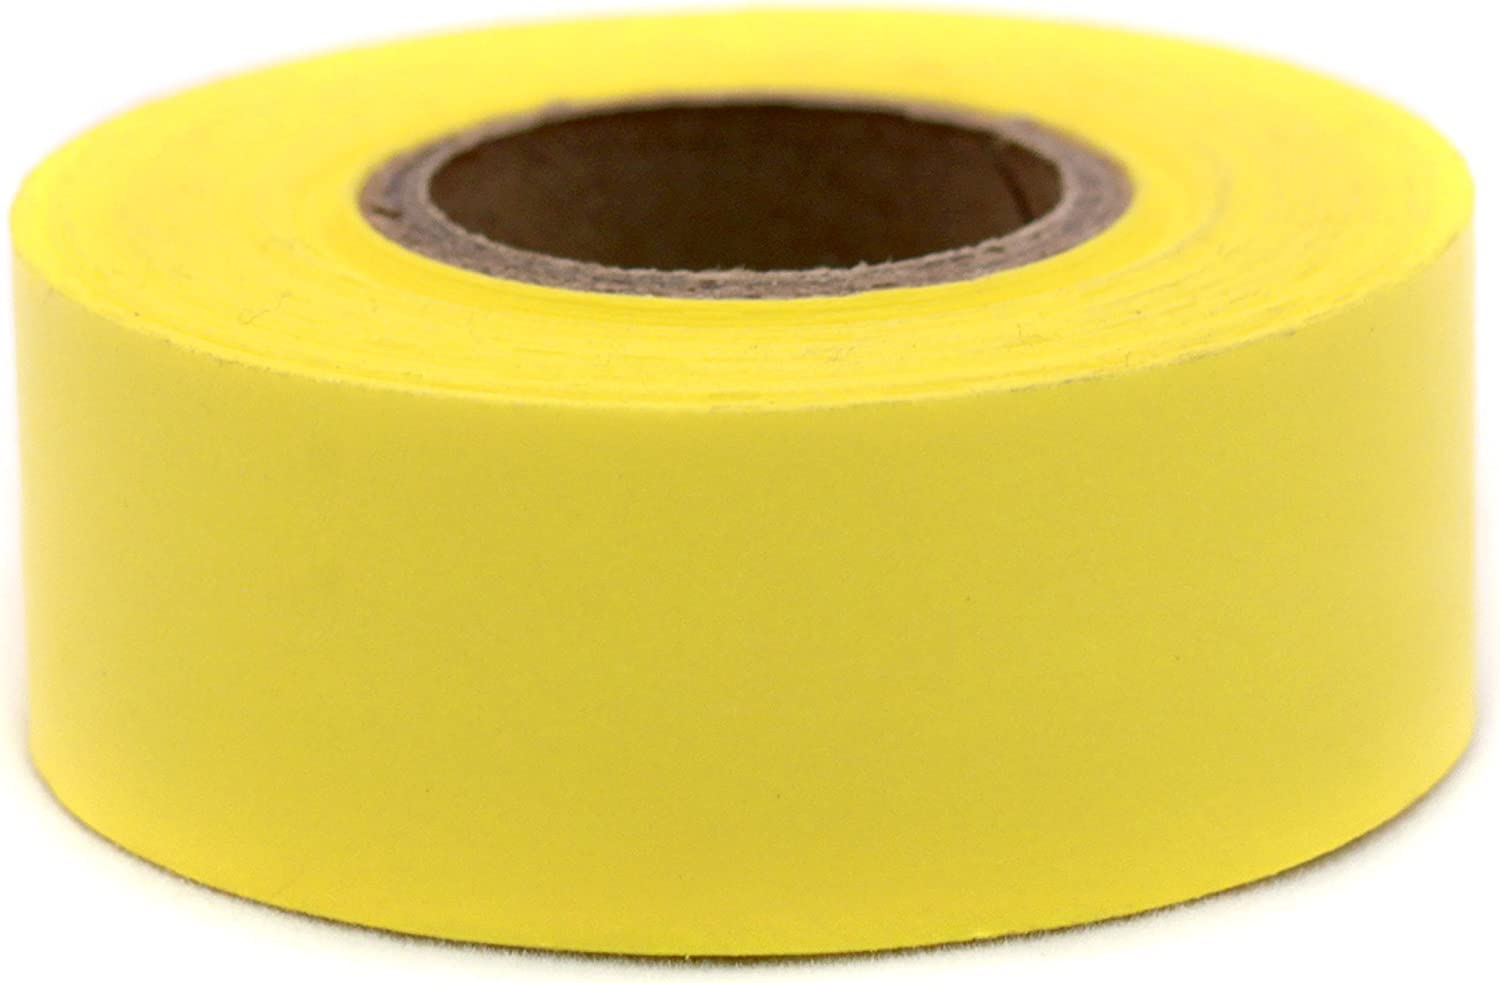 ChromaLabel 1 Inch Clean Remove Color-Code Tape, 500 Inch Roll, Yellow